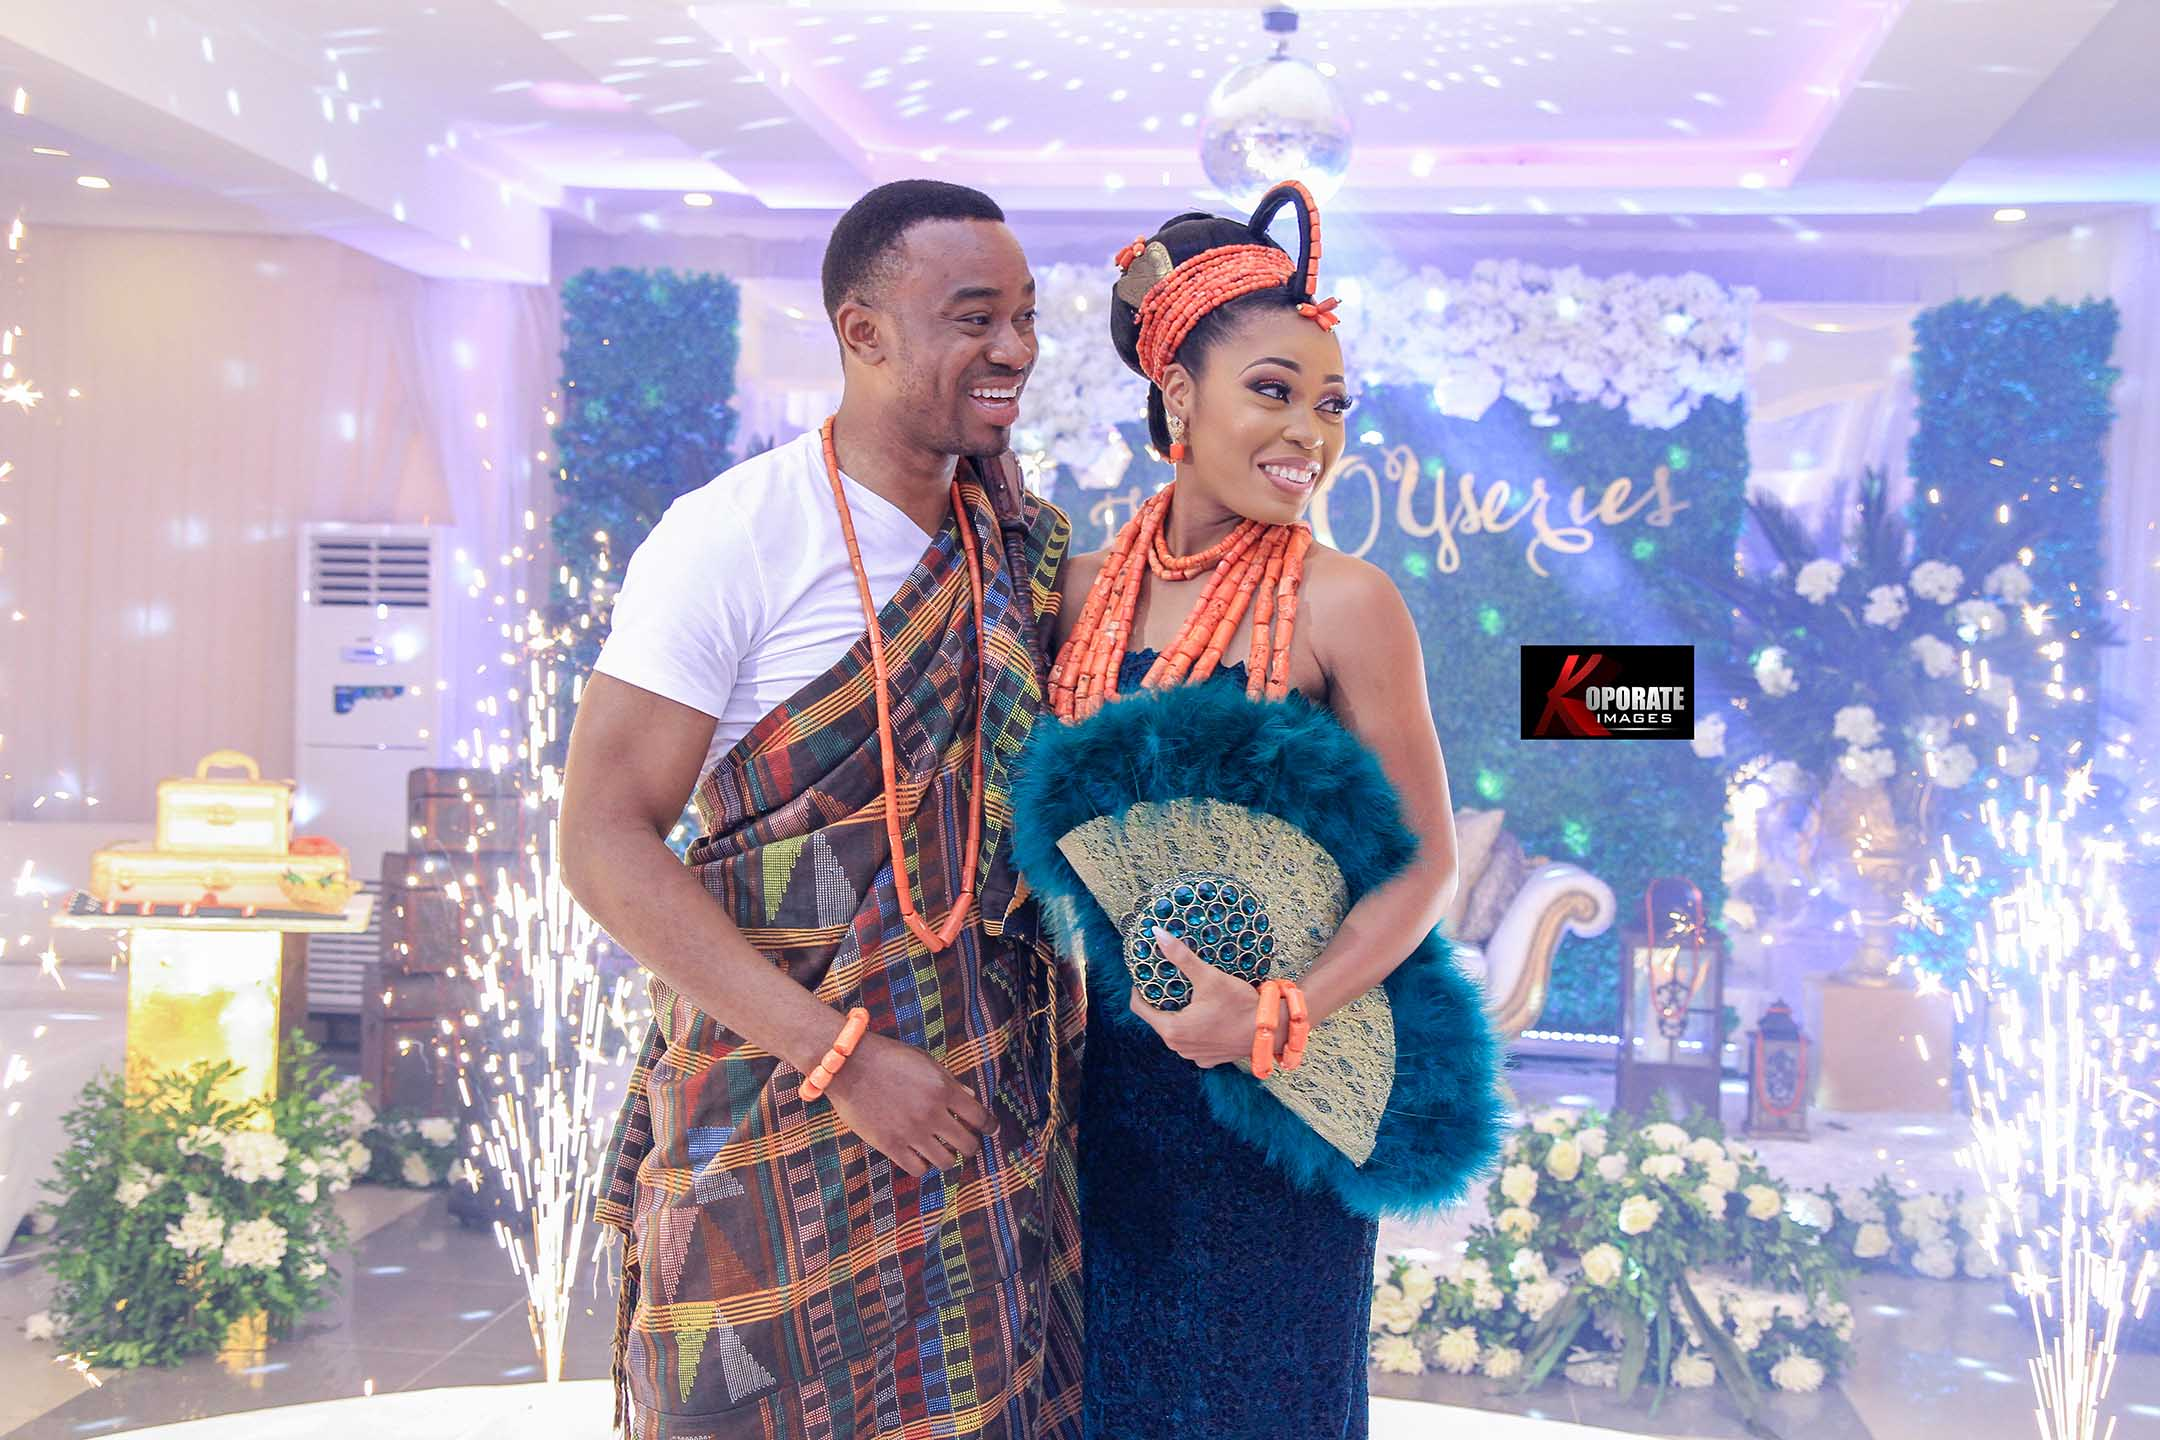 AMAZING BRIDE AND GROOM wedding photos|Koporate Images|Photography & Video Coverage studio in Benin City|Professional Photographers for your events|Nigerian Wedding Photographer in Benin City|Edo Brides, benin brides